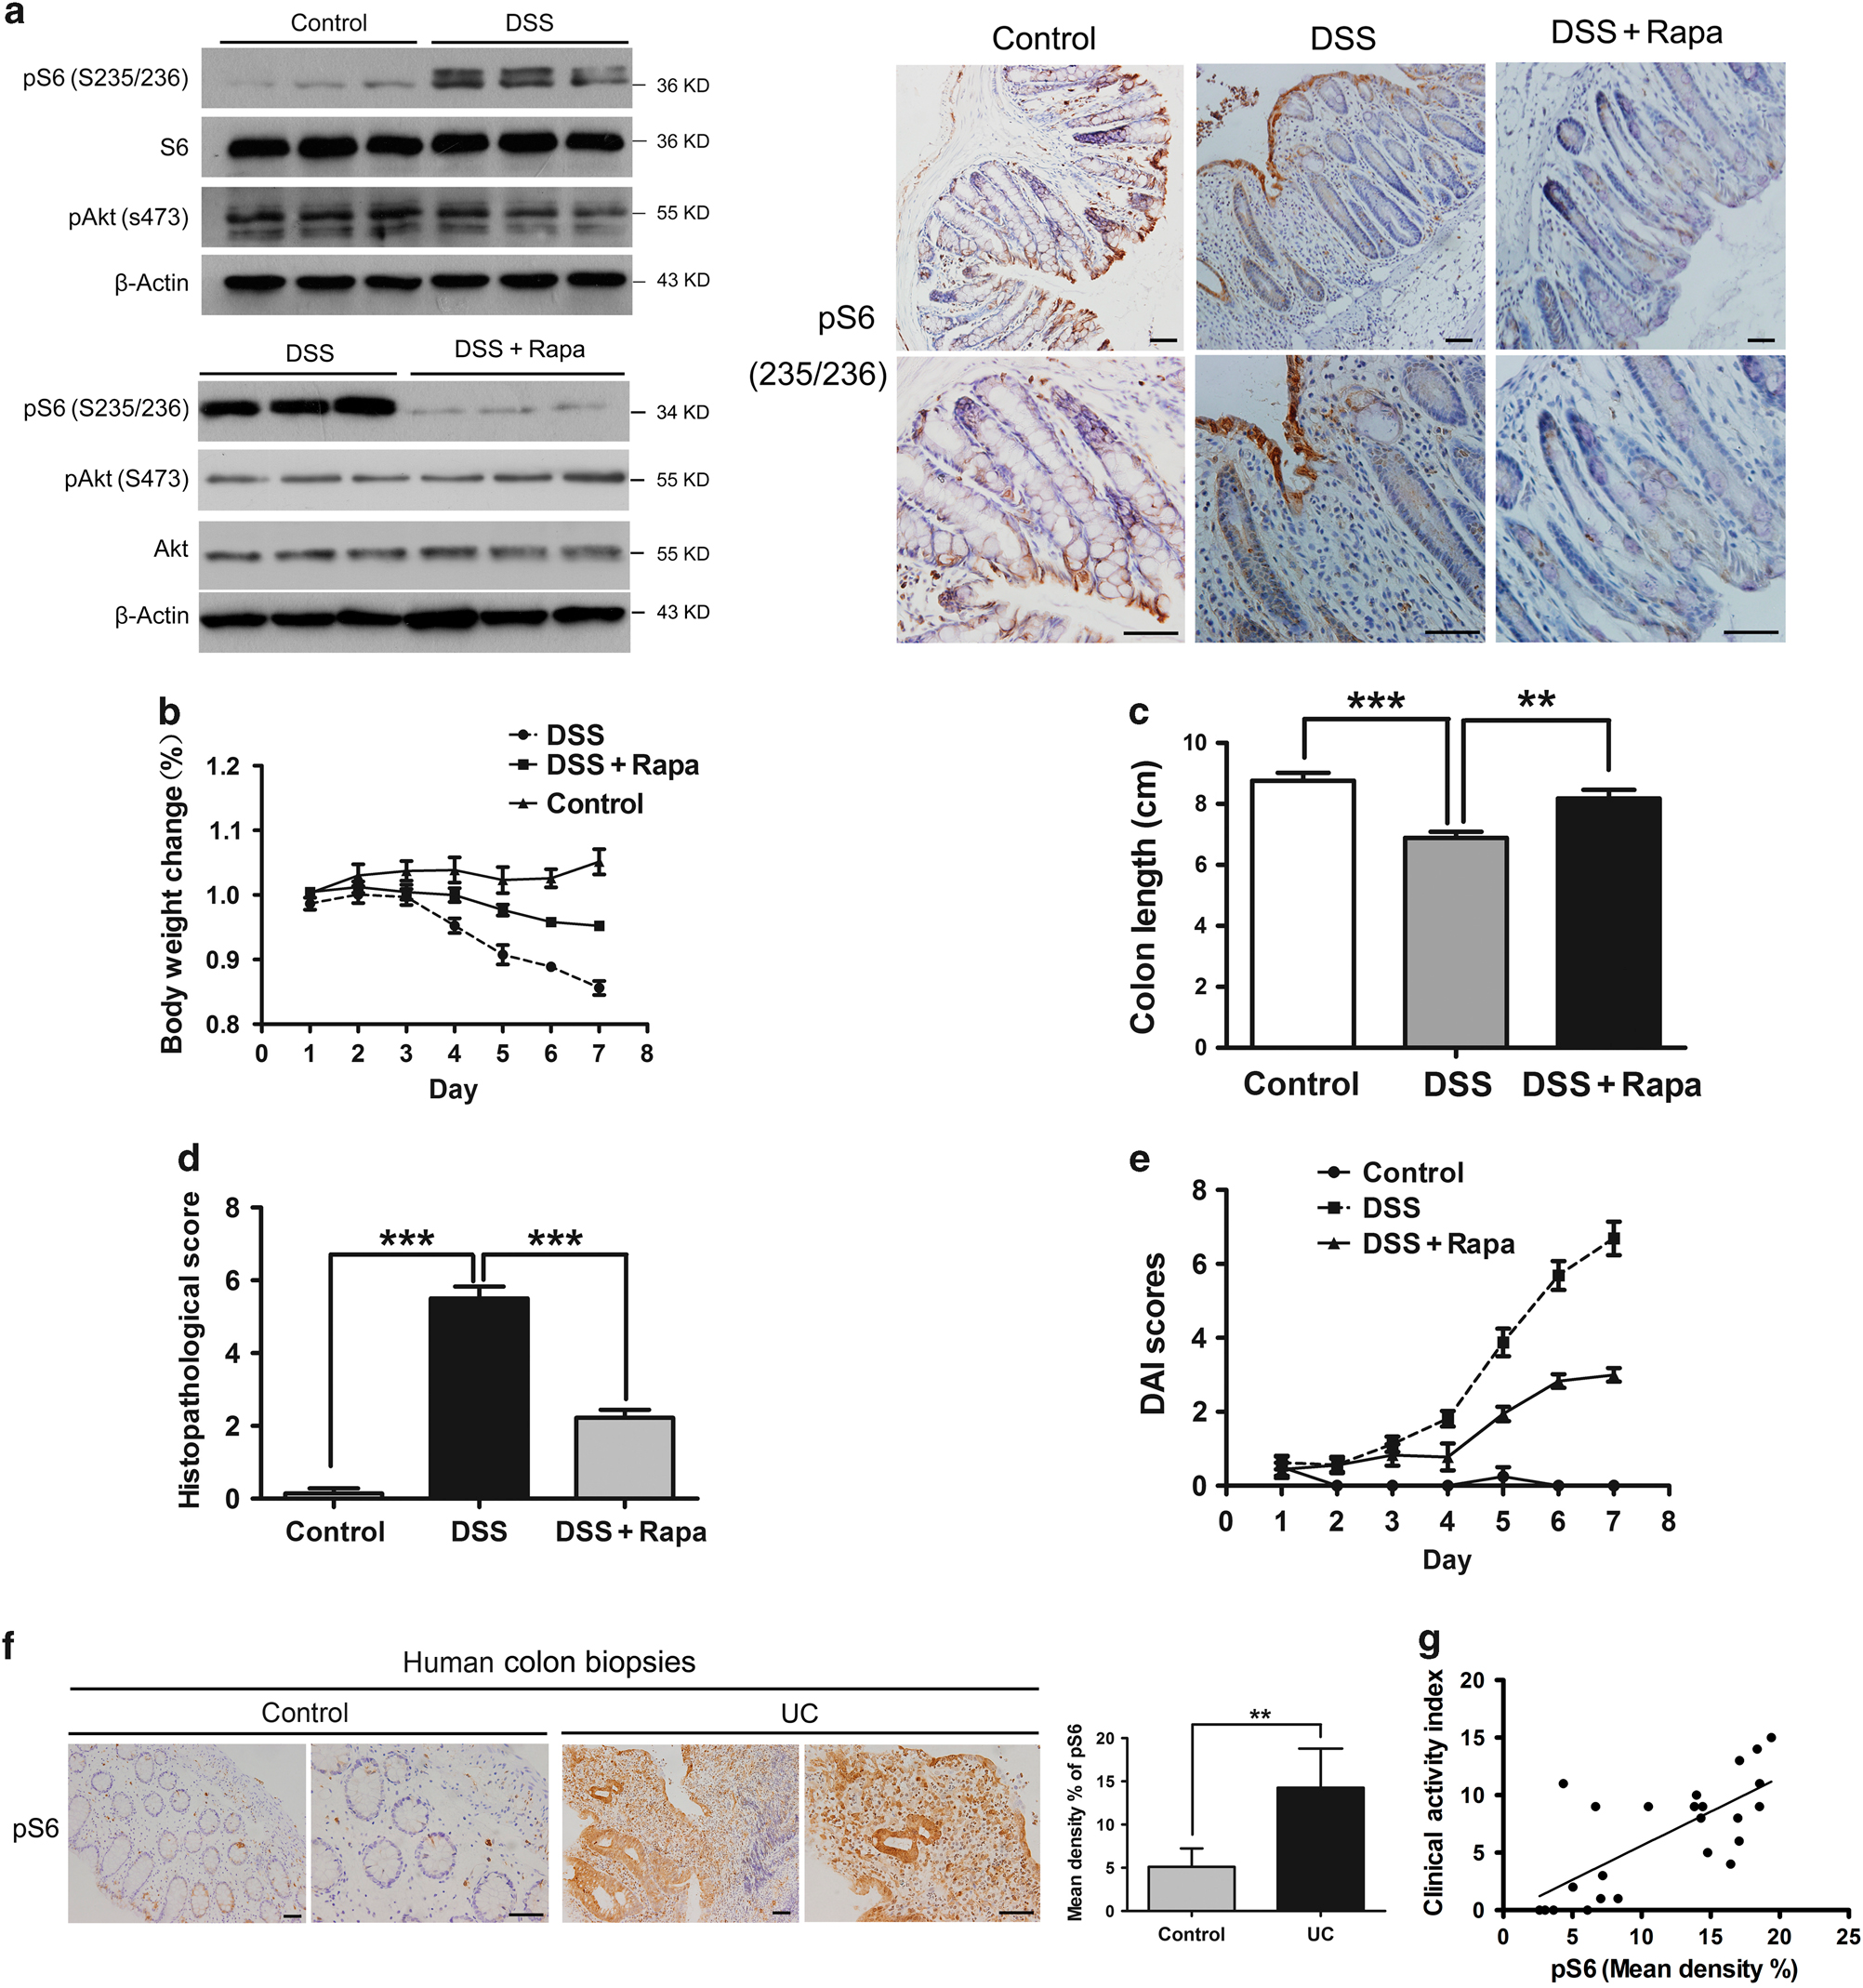 Colonic Epithelial Mtorc1 Promotes Ulcerative Colitis Through Cox 2 Cat 236 Engine Diagram Mediated Th17 Responses Mucosal Immunology